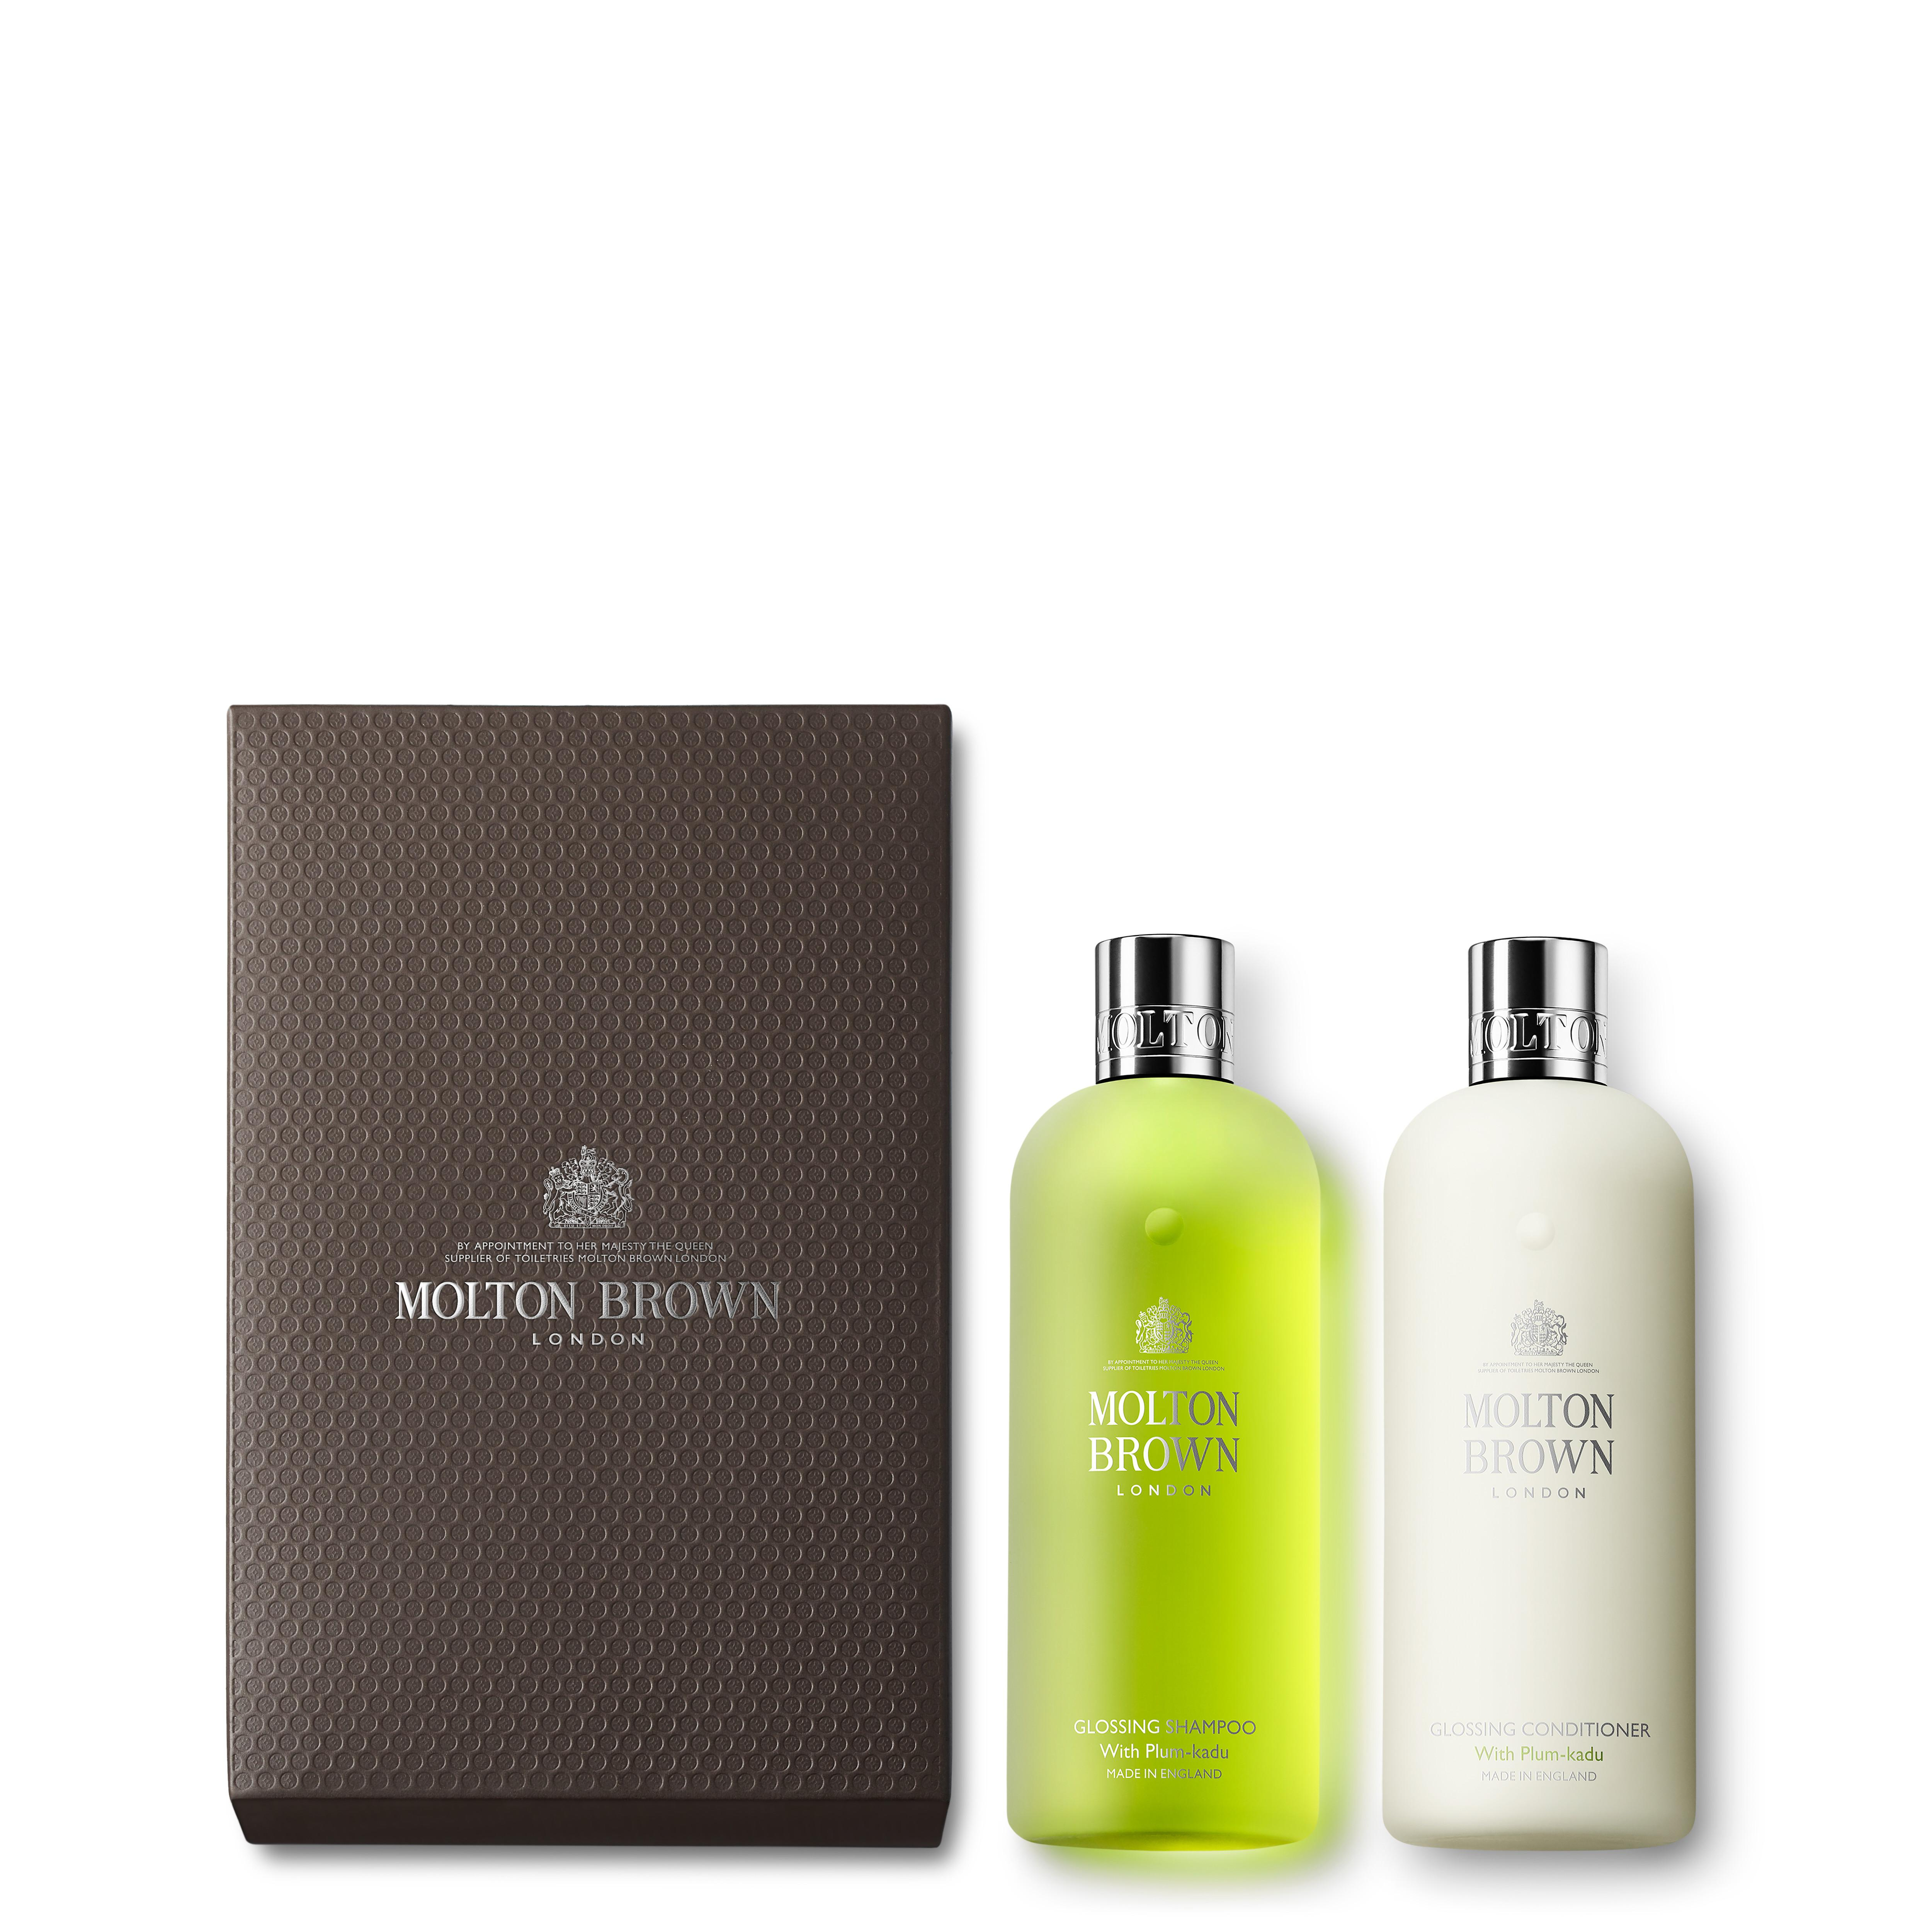 Glossing Hair Care Set With Plum-kadu  sc 1 st  Molton Brown & Gift Ideas for Mom | Luxury Gifts for Mom | Molton Brown® US